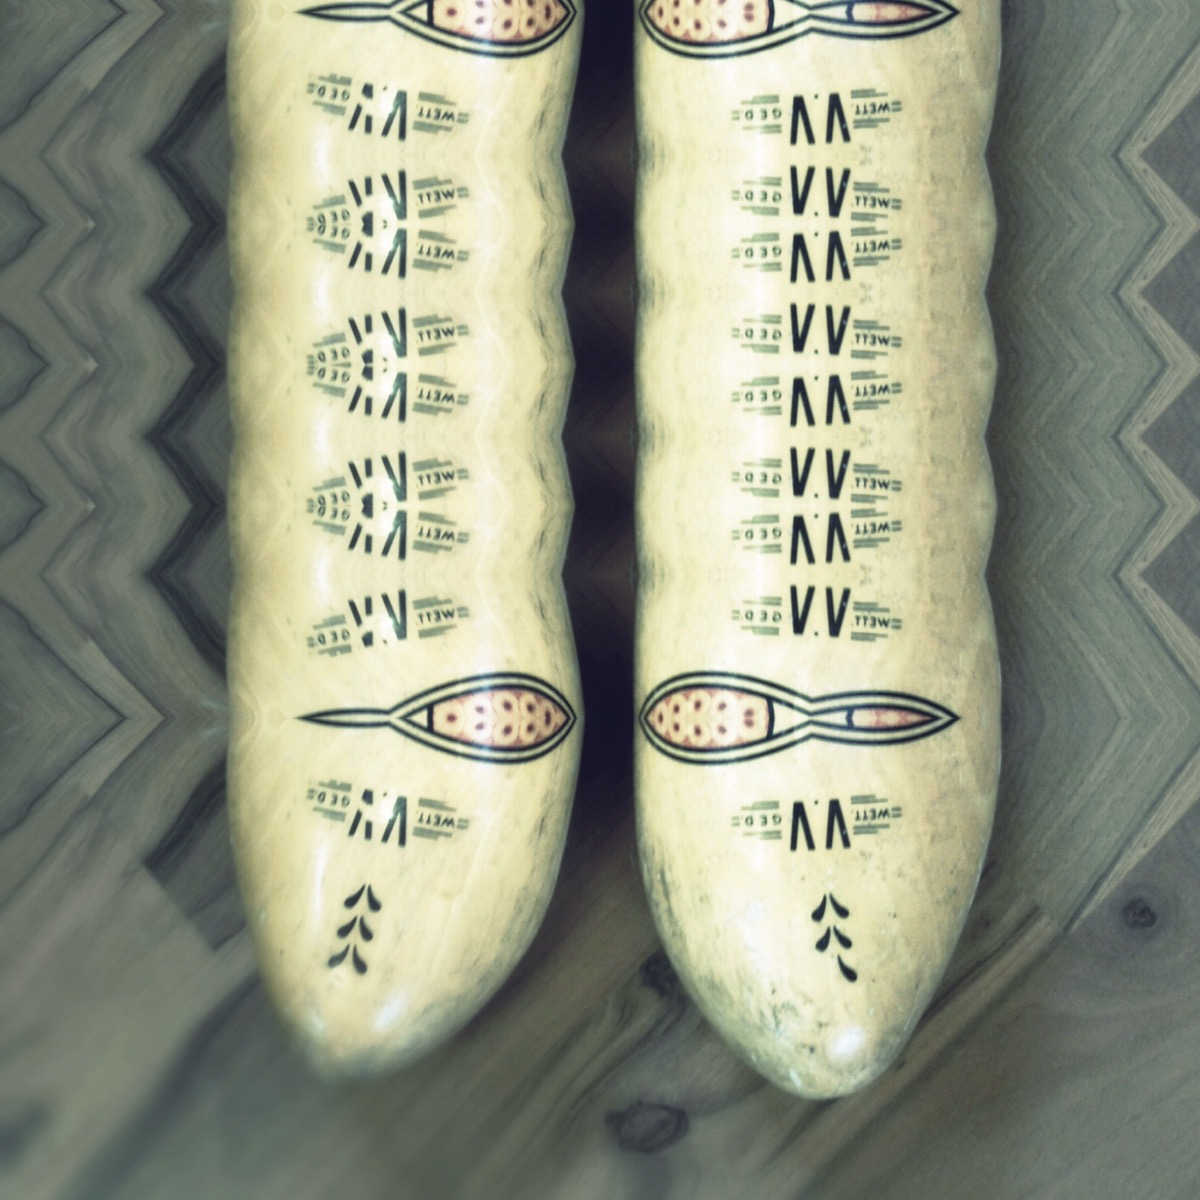 Dutch wooden shoes, cut and recombined with #Decim8